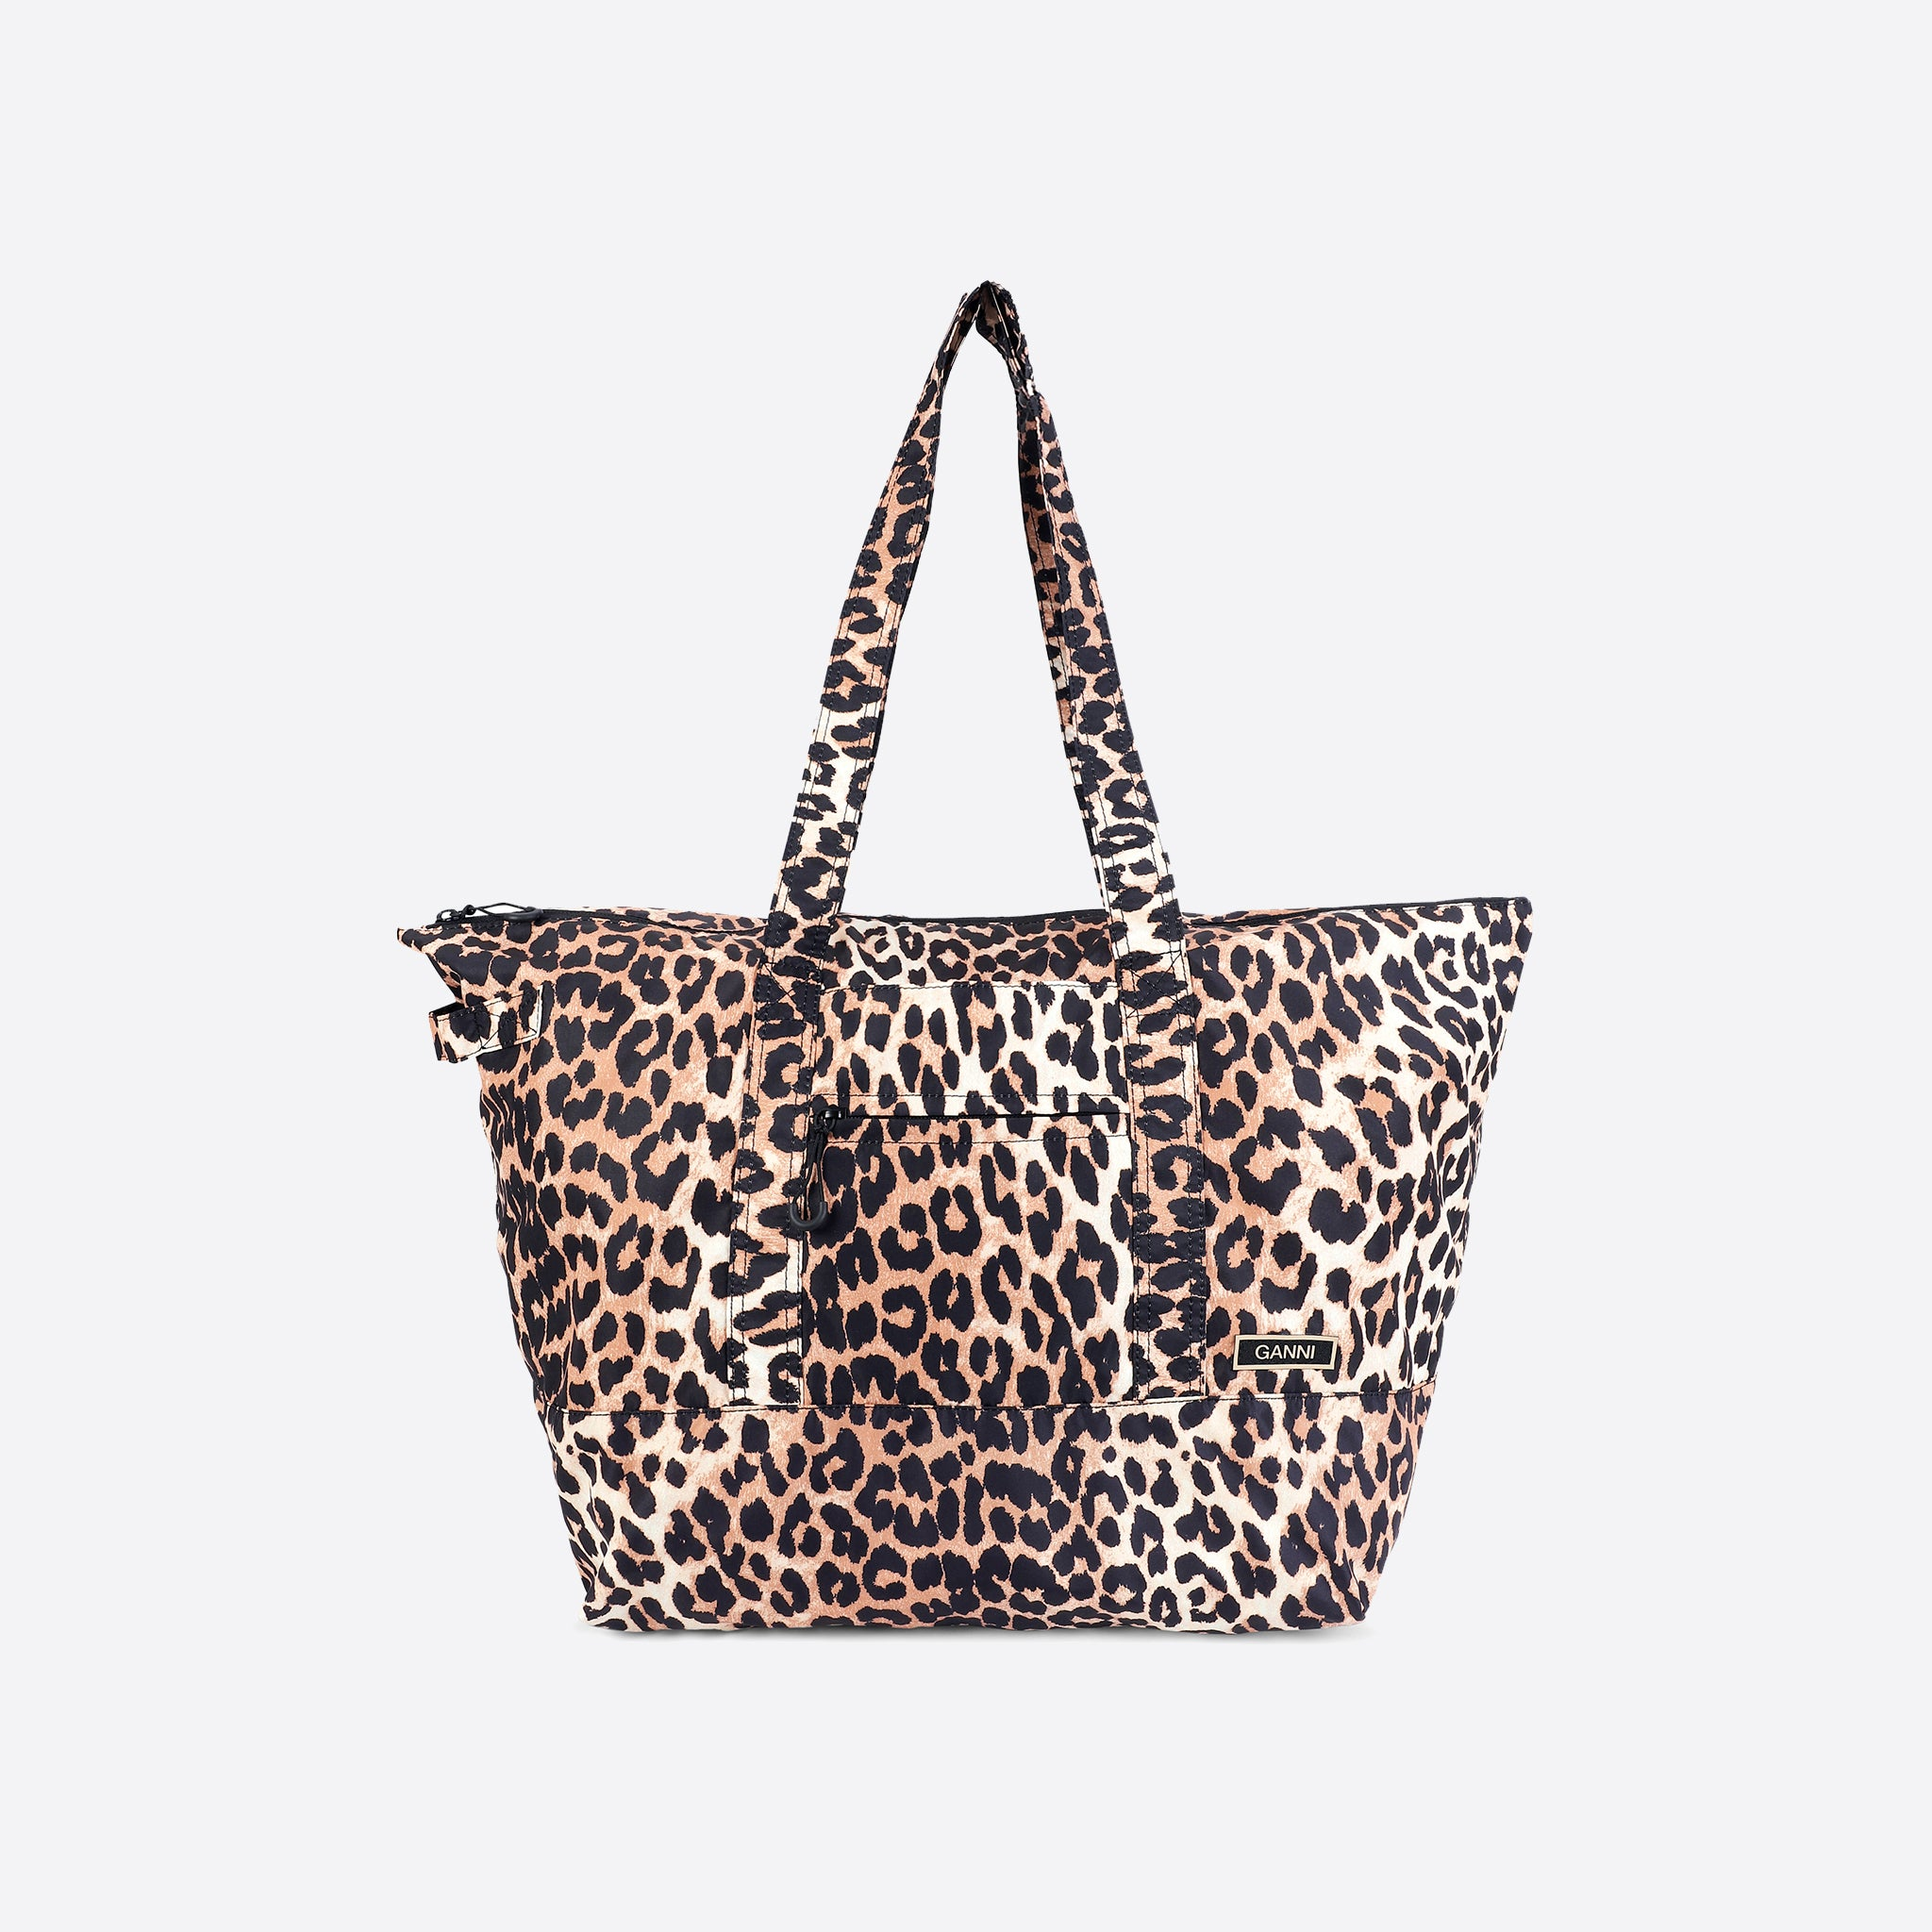 Ganni Recycled Tech Fabric Packable Tote in Leopard